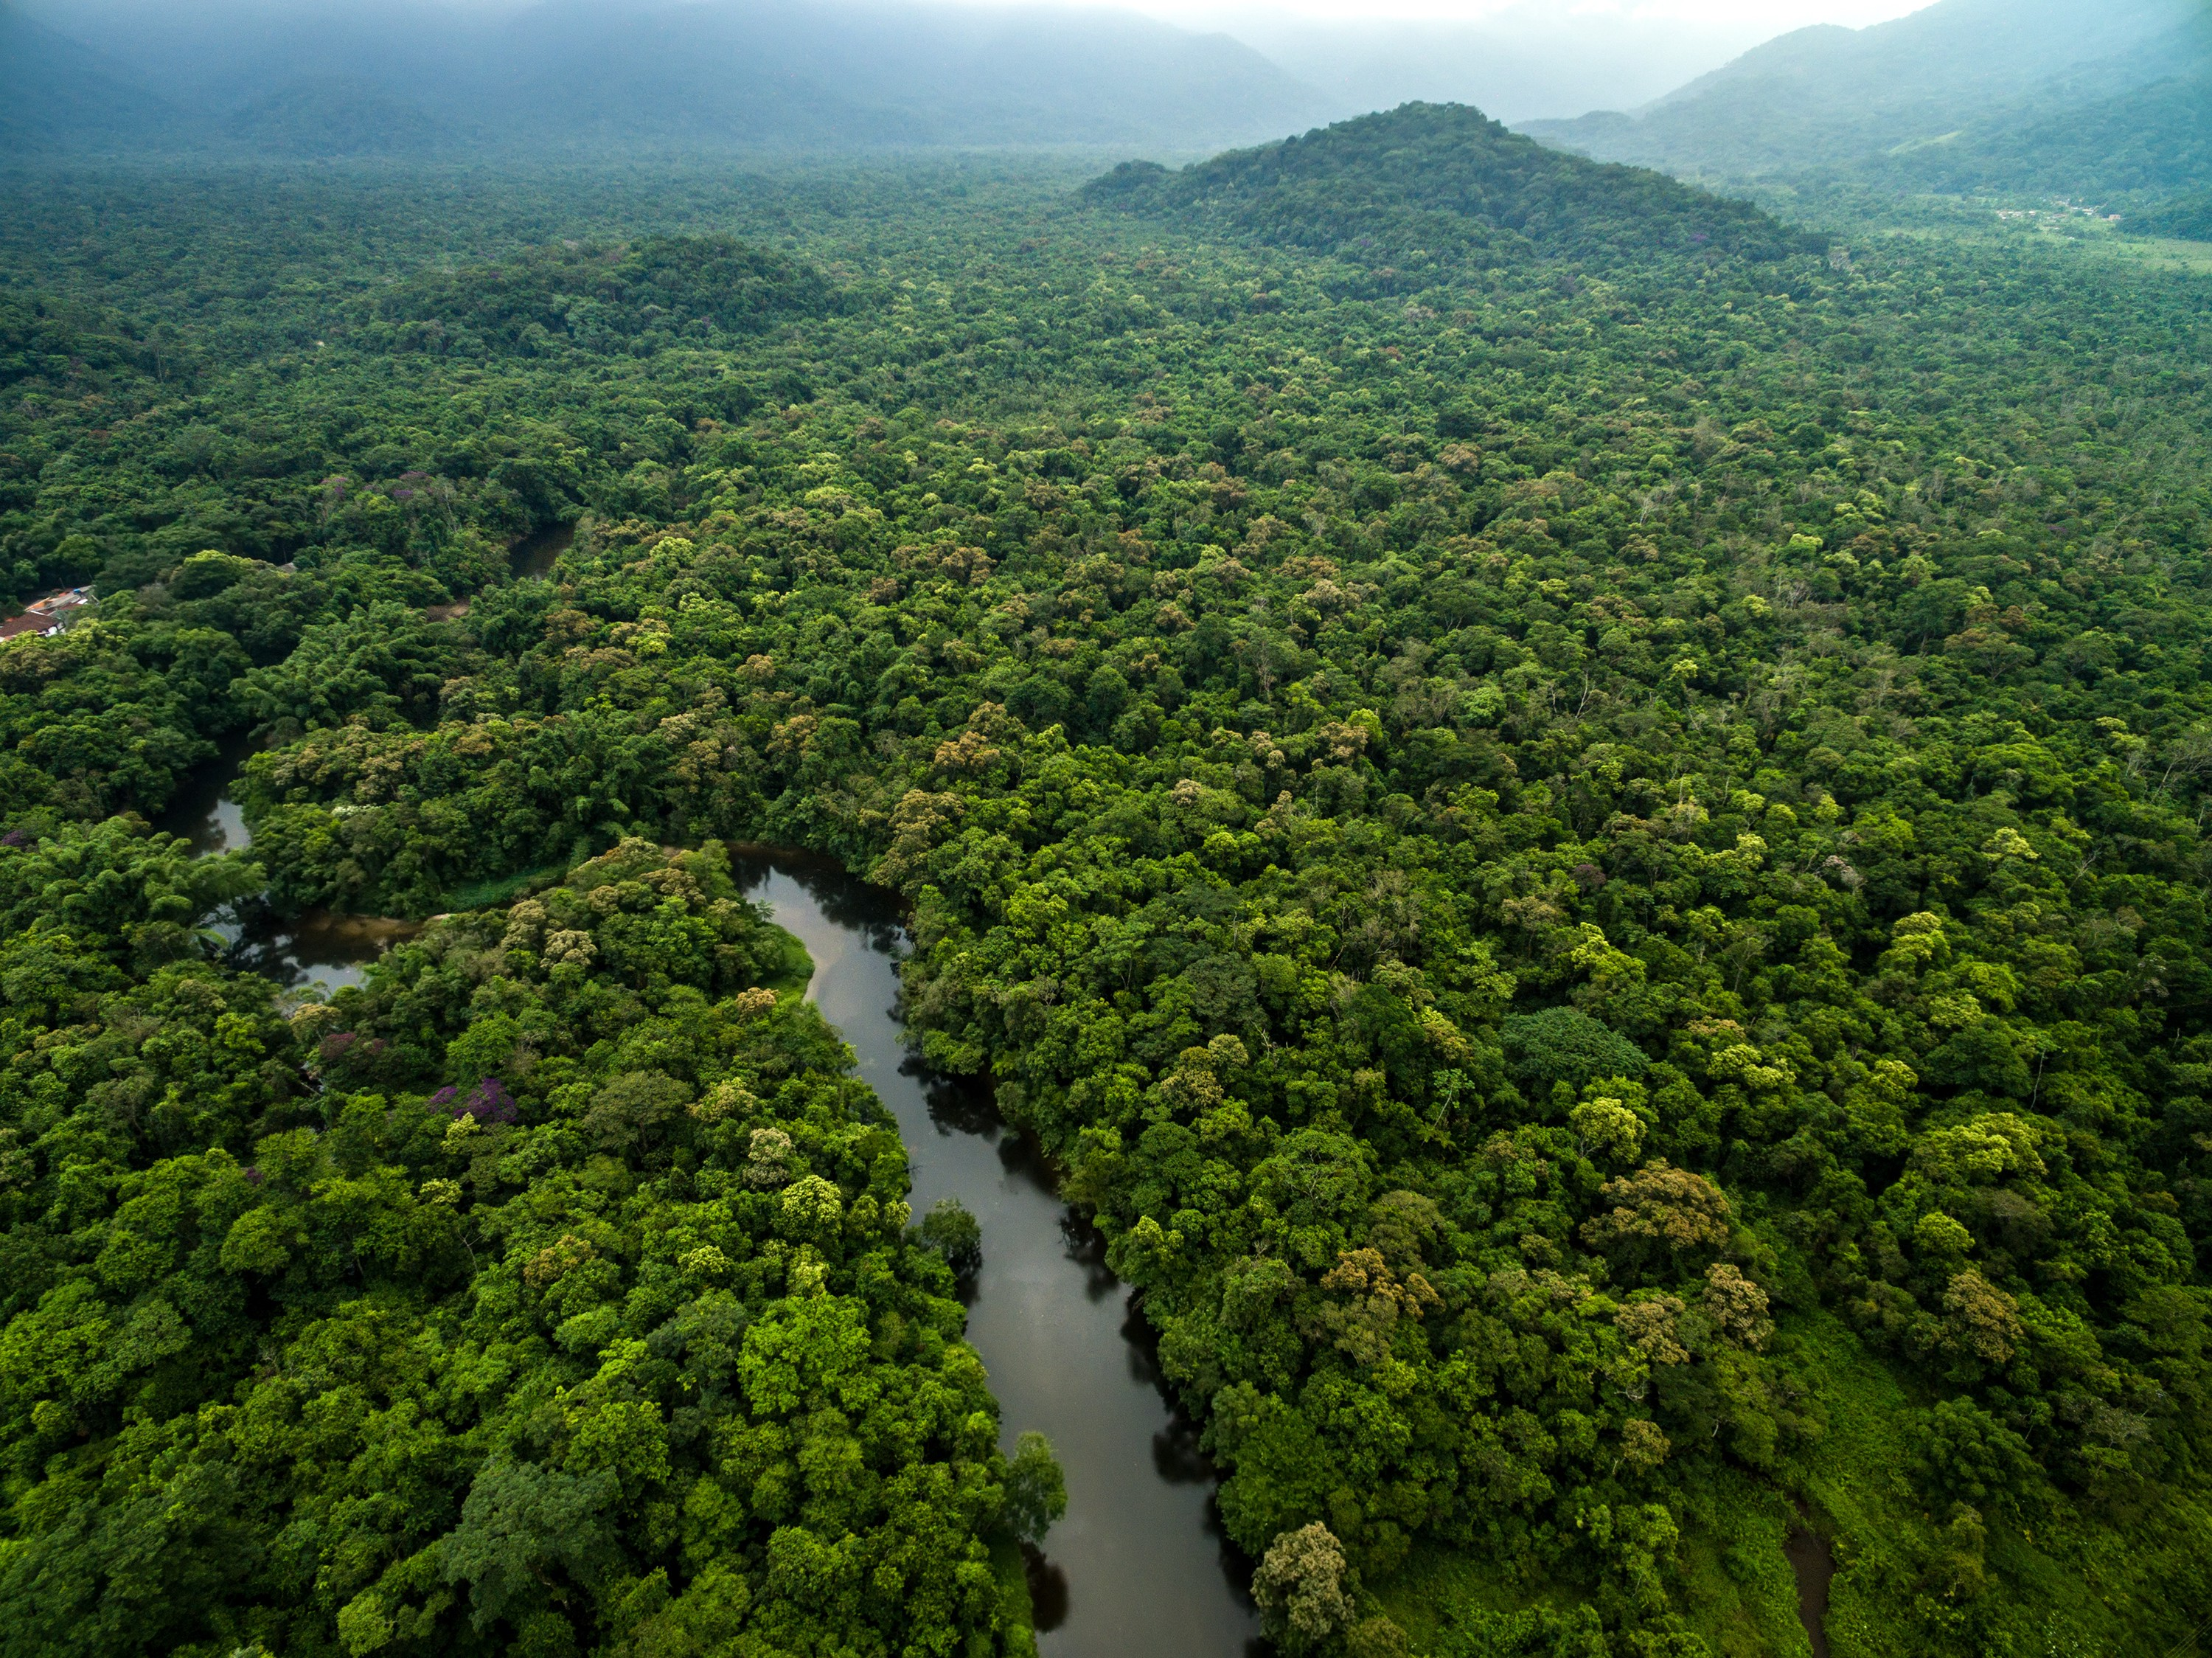 An aerial view of the Amazon Rainforest, Amazon River and surrounding mountains